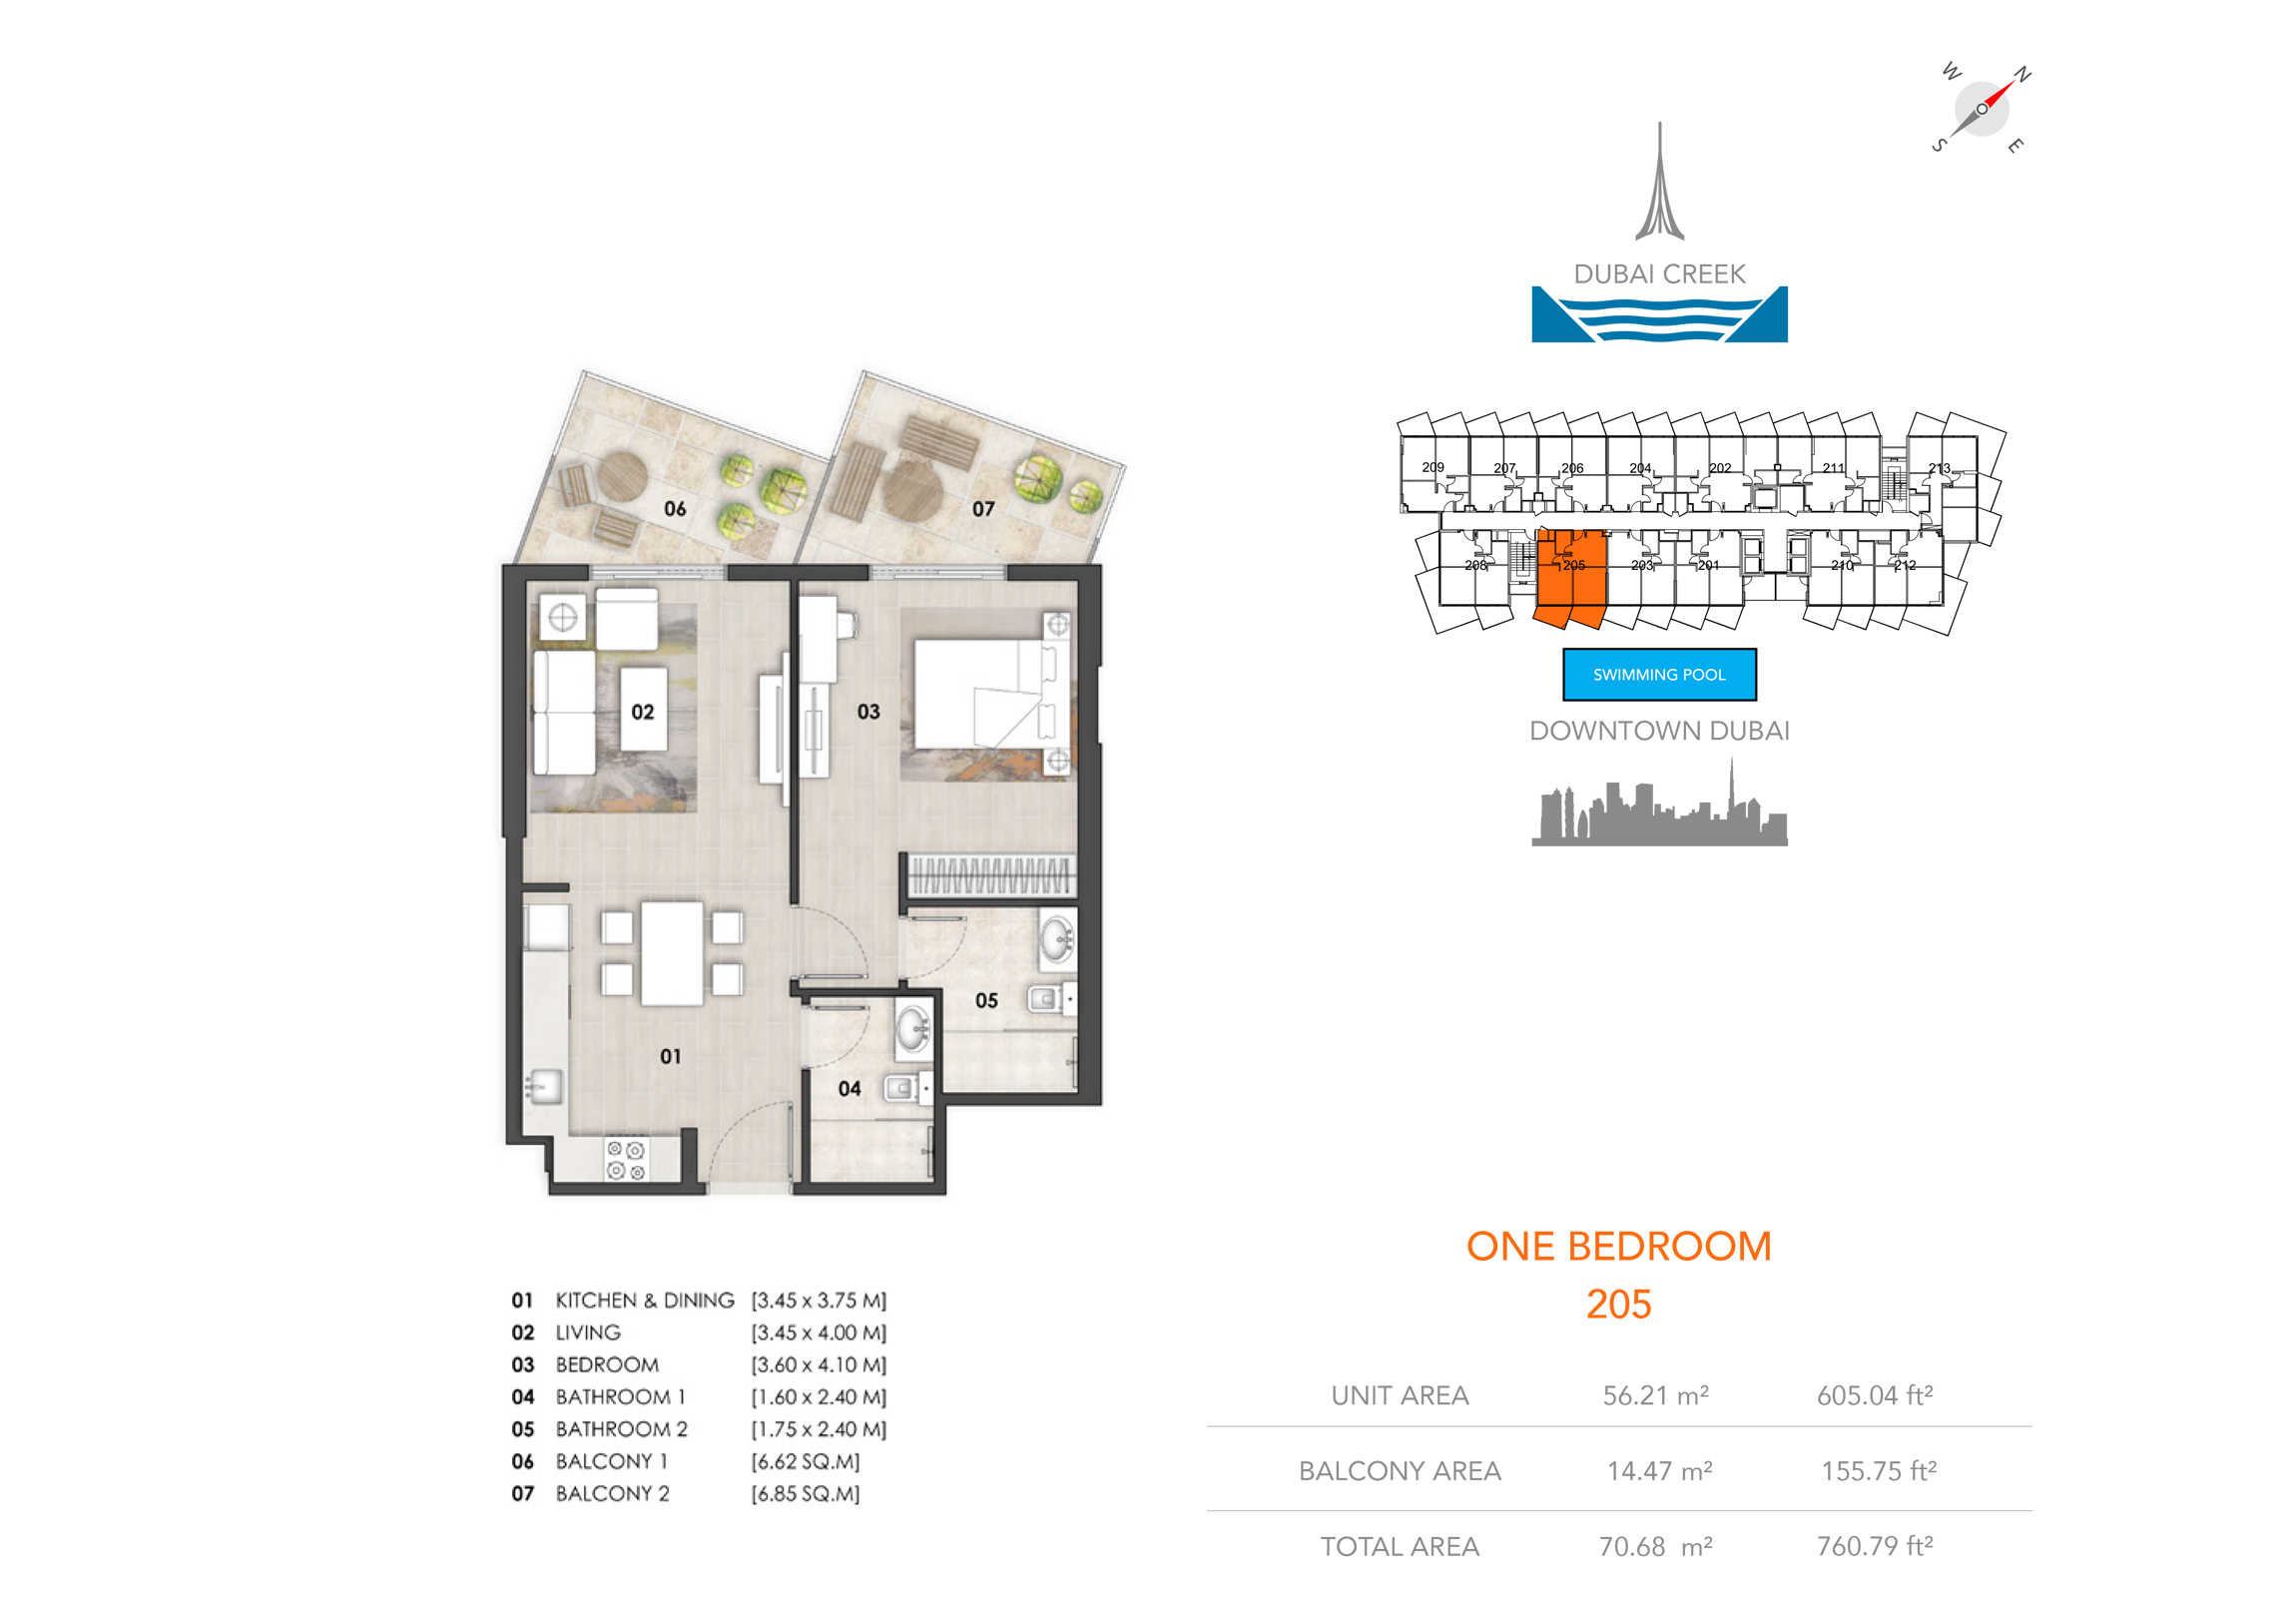 1 Bedroom 205, Size 760.79 sq.ft